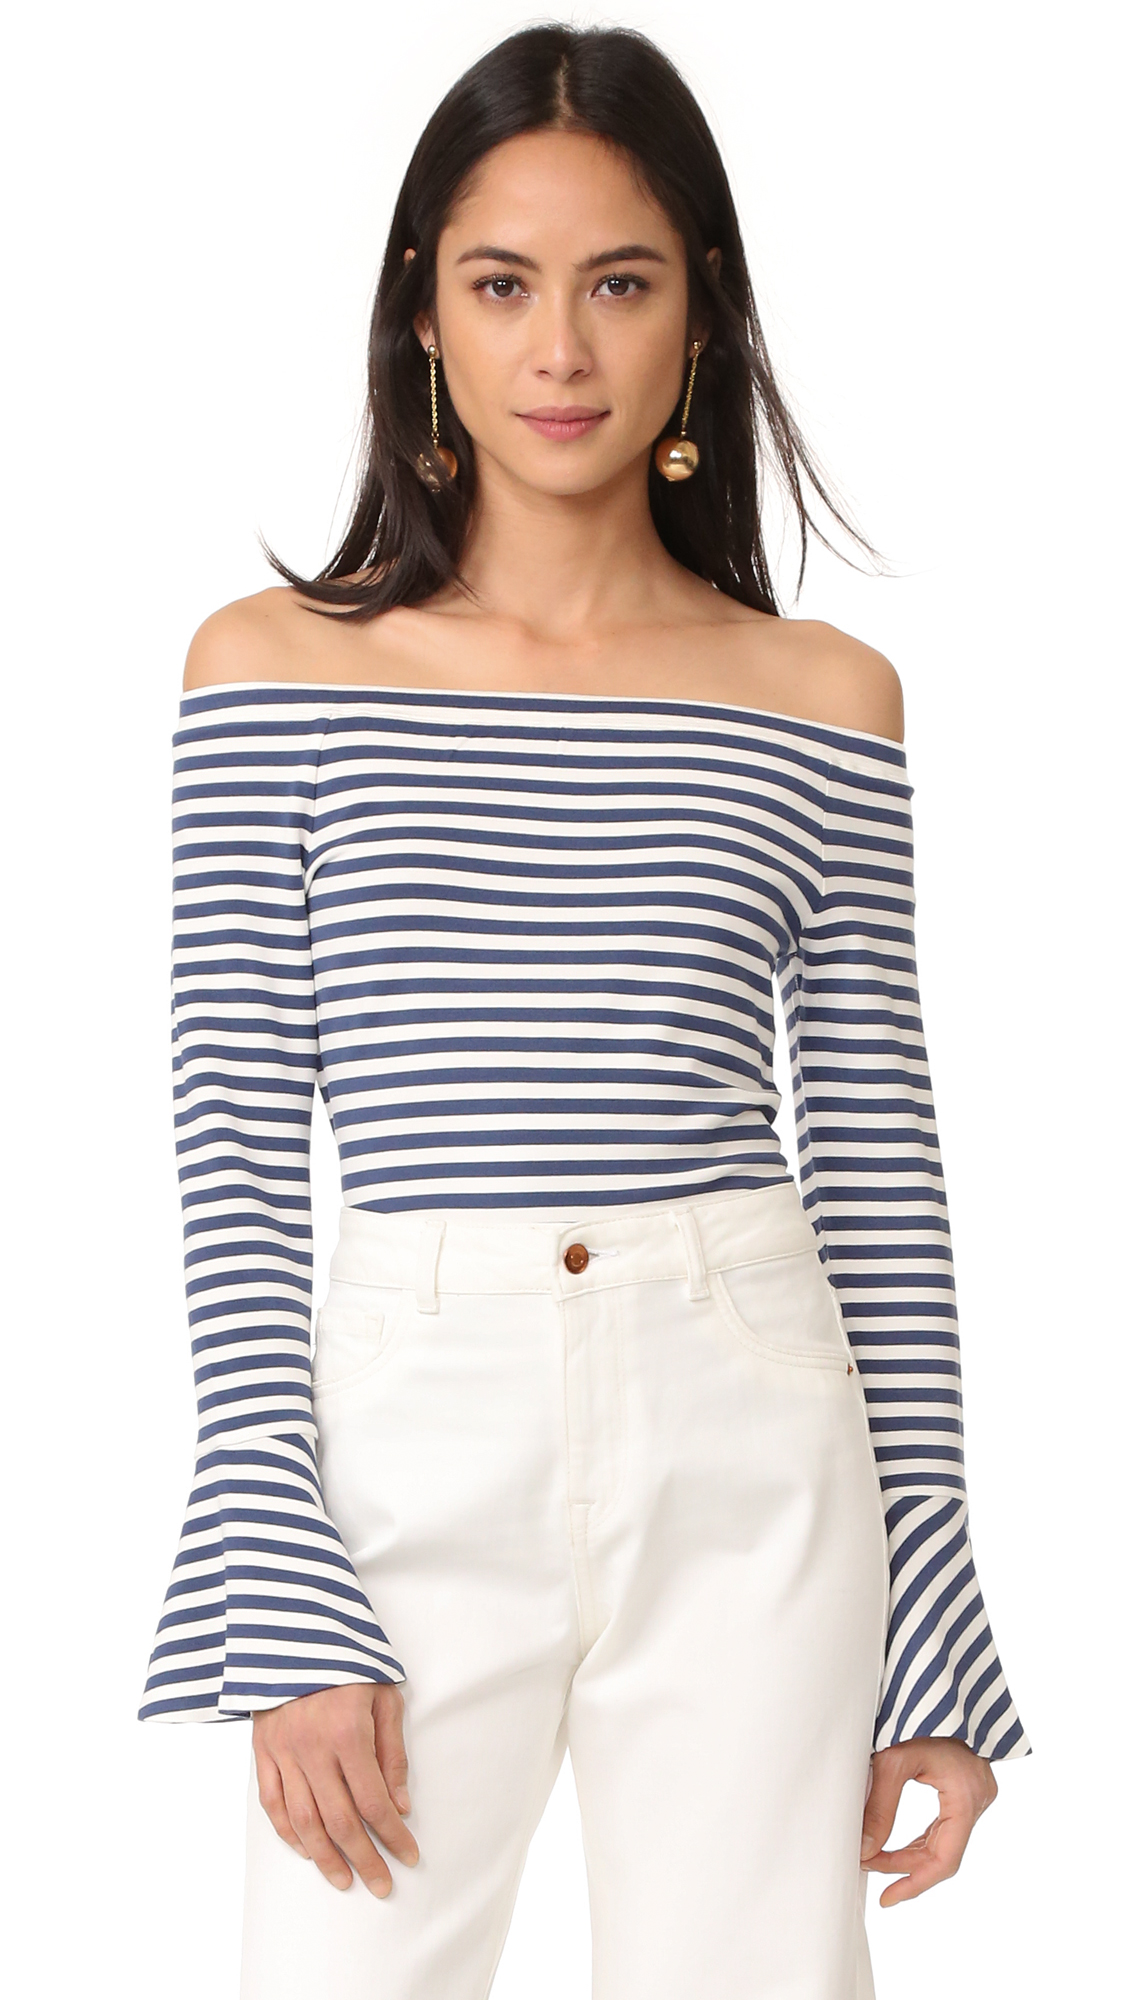 A striped Club Monaco top with a flattering off the shoulder neckline. Long sleeves with flared cuffs. Fabric: French terry. 95% viscose/5% elastane. Hand wash. Imported, China. Measurements Length: 20.5in / 52cm, from center back Measurements from size